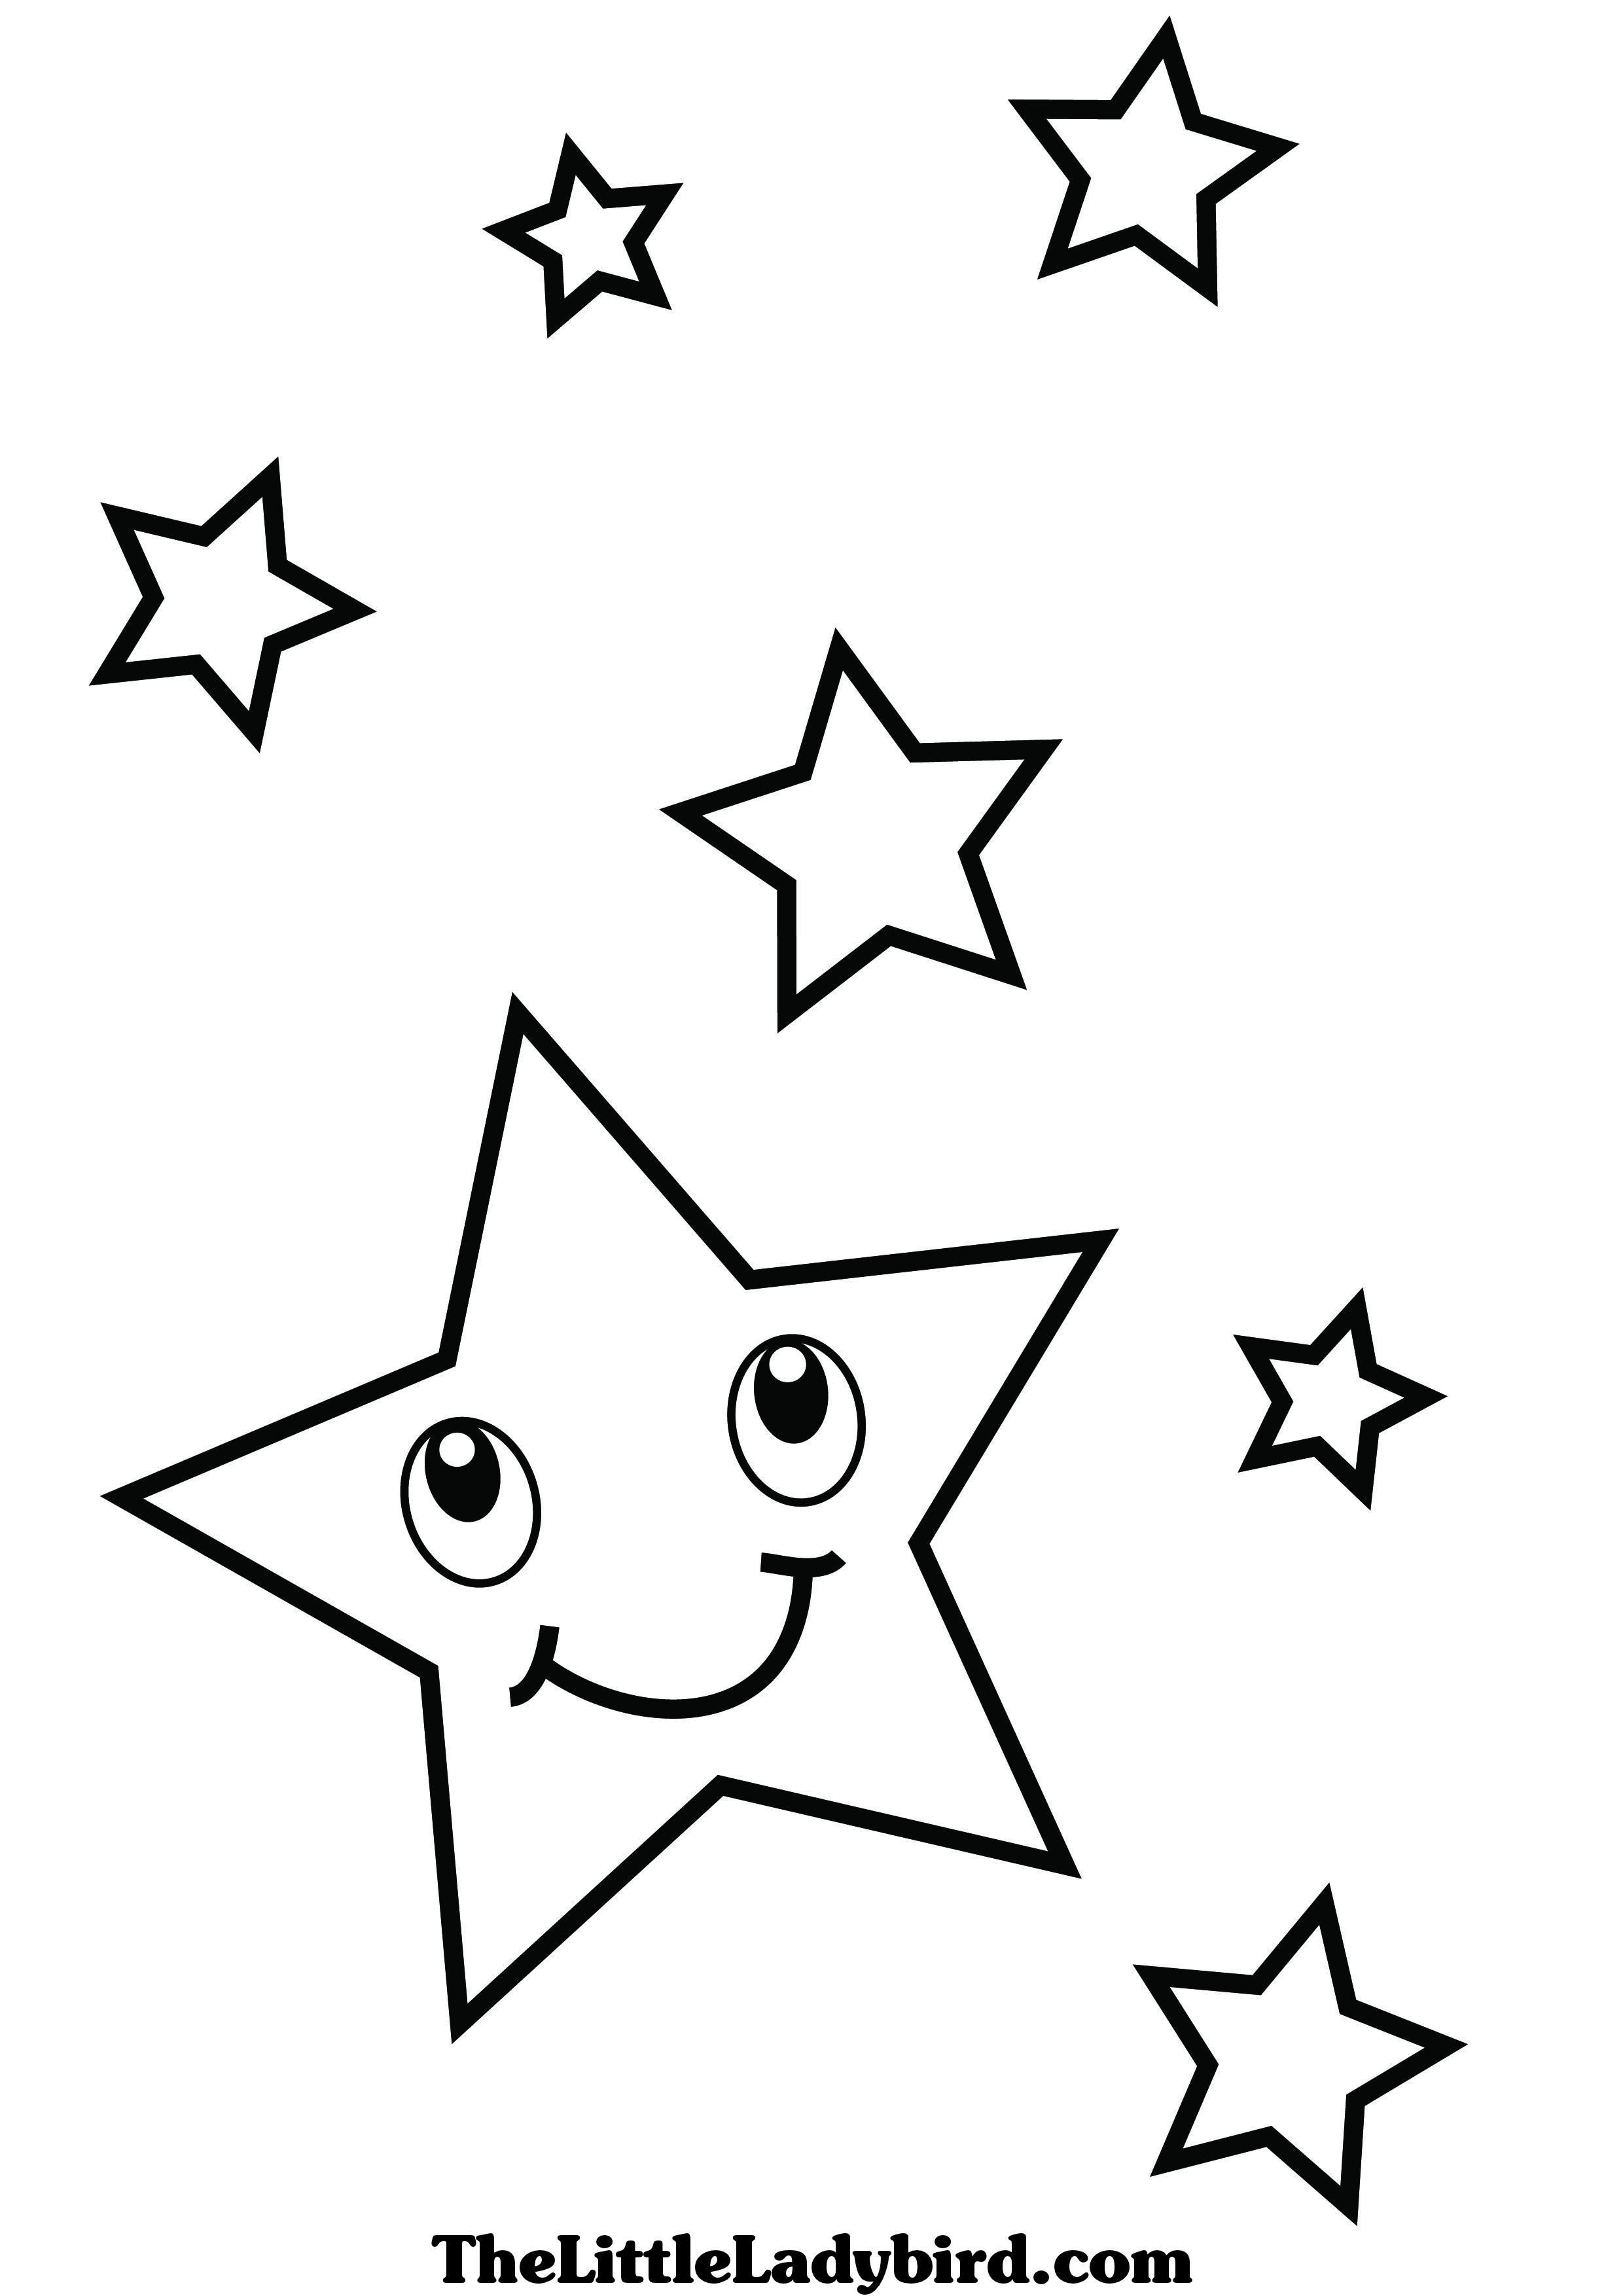 Coloring Page Of A Star 10 Good Looking Coloring Page Stars Medium Is Themess